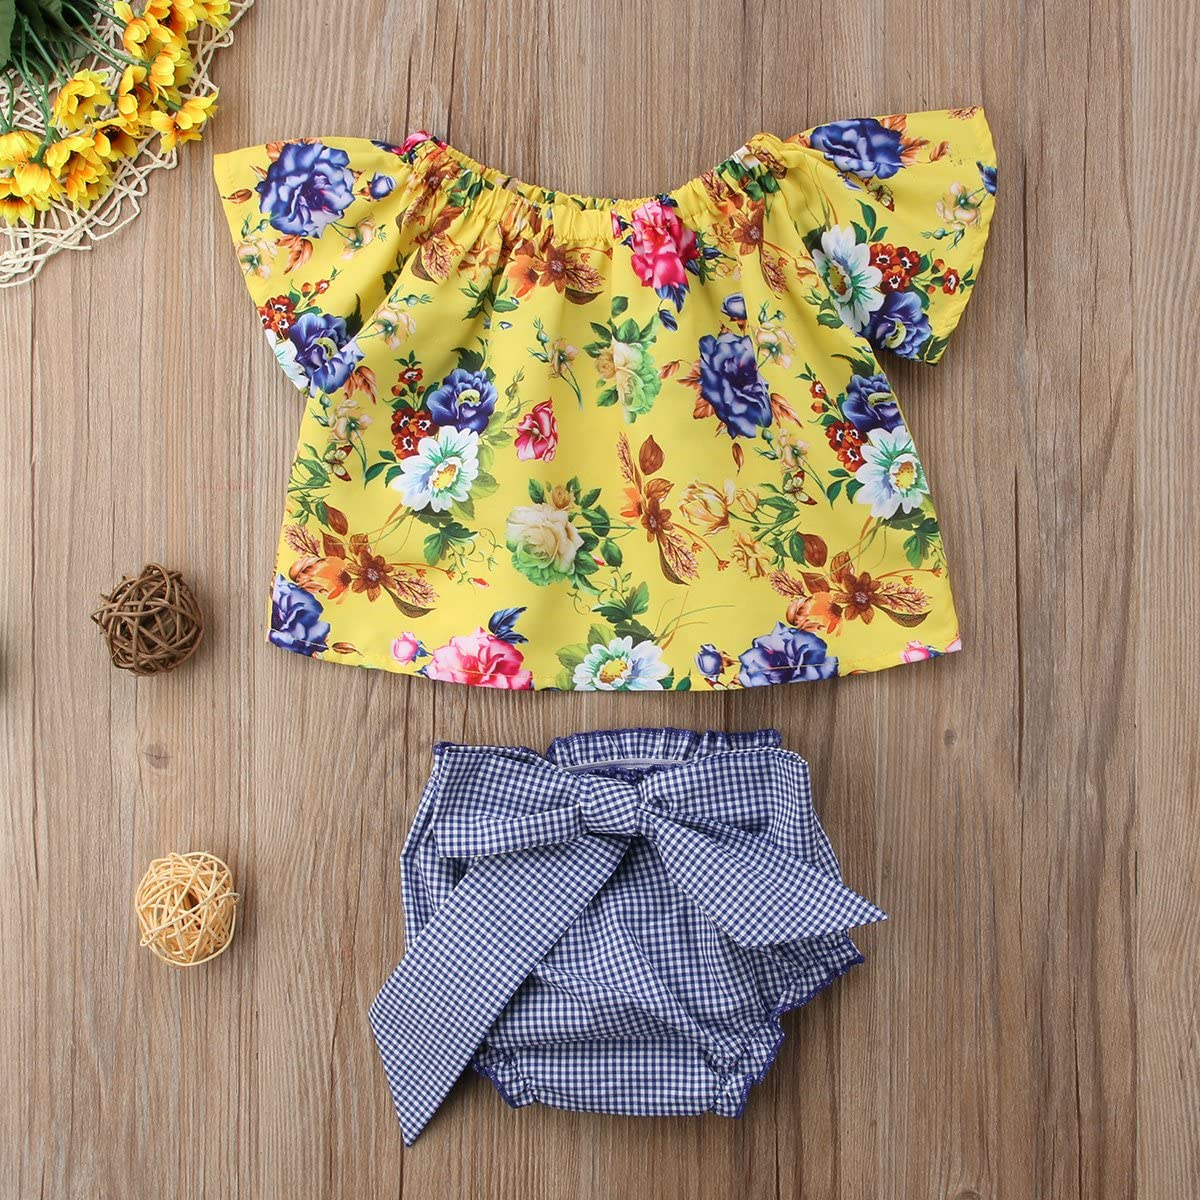 Annvivi 2pcs Baby Girl Floral Tube Top Plaid Bowknot Bottoms Casual Clothing for 0-24 Months